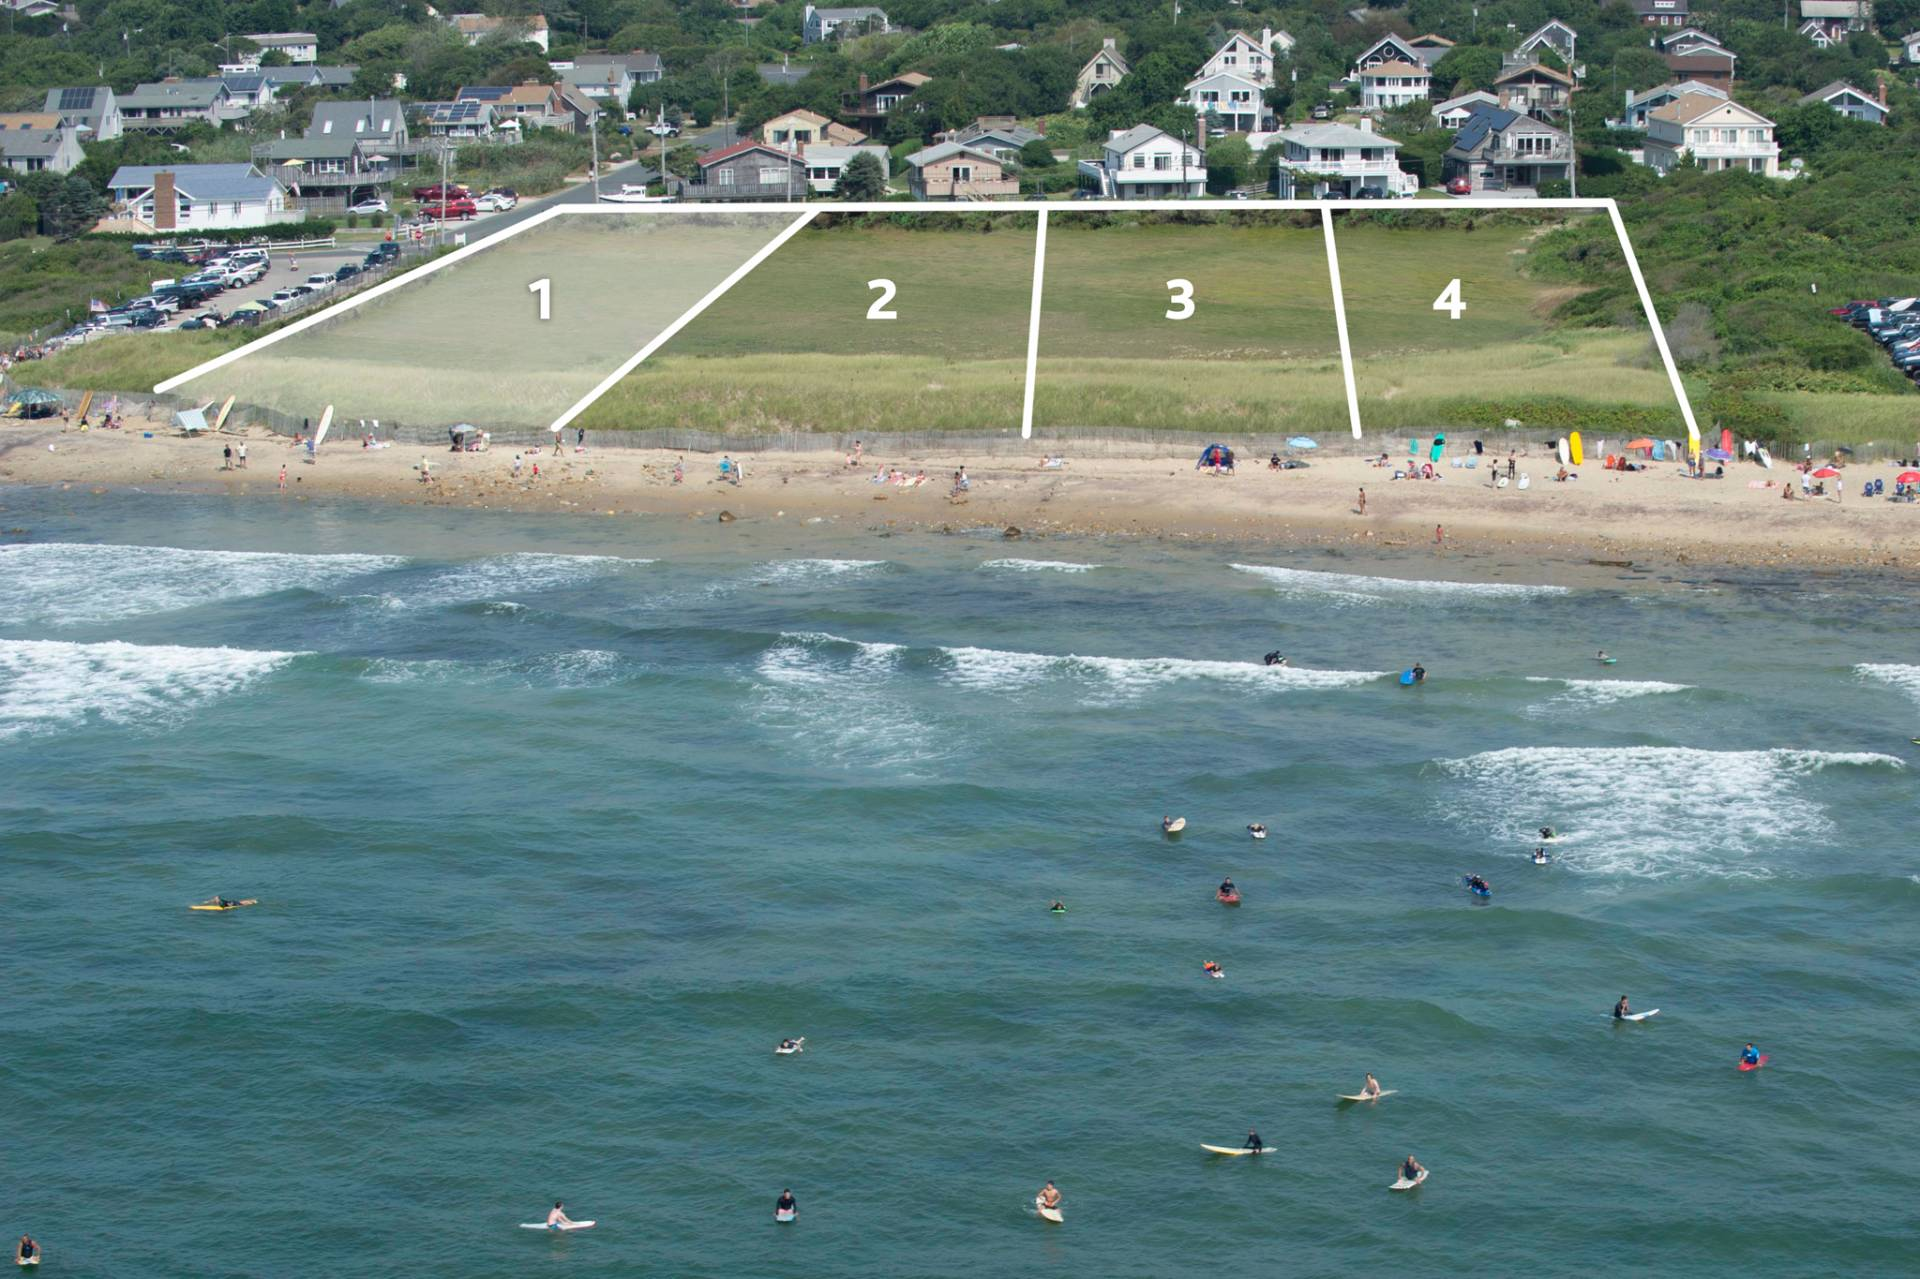 Land for Sale at Montauk: Ditch Plains Beach Home Site Montauk, New York